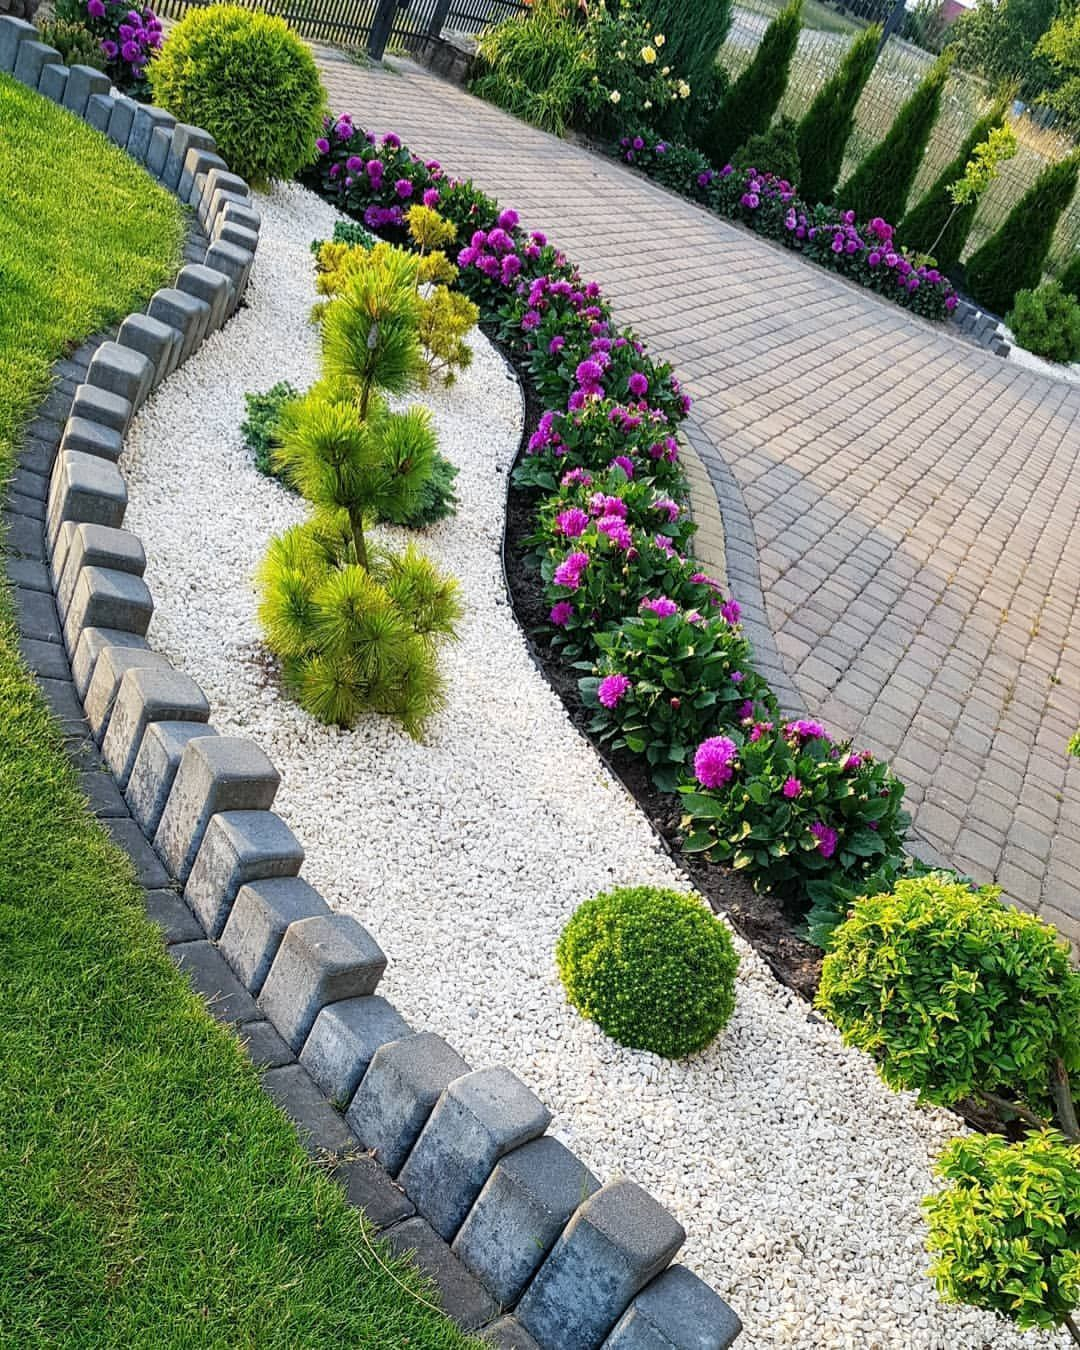 Brilliant Gardening Design Ideas You Need To Know In 202031